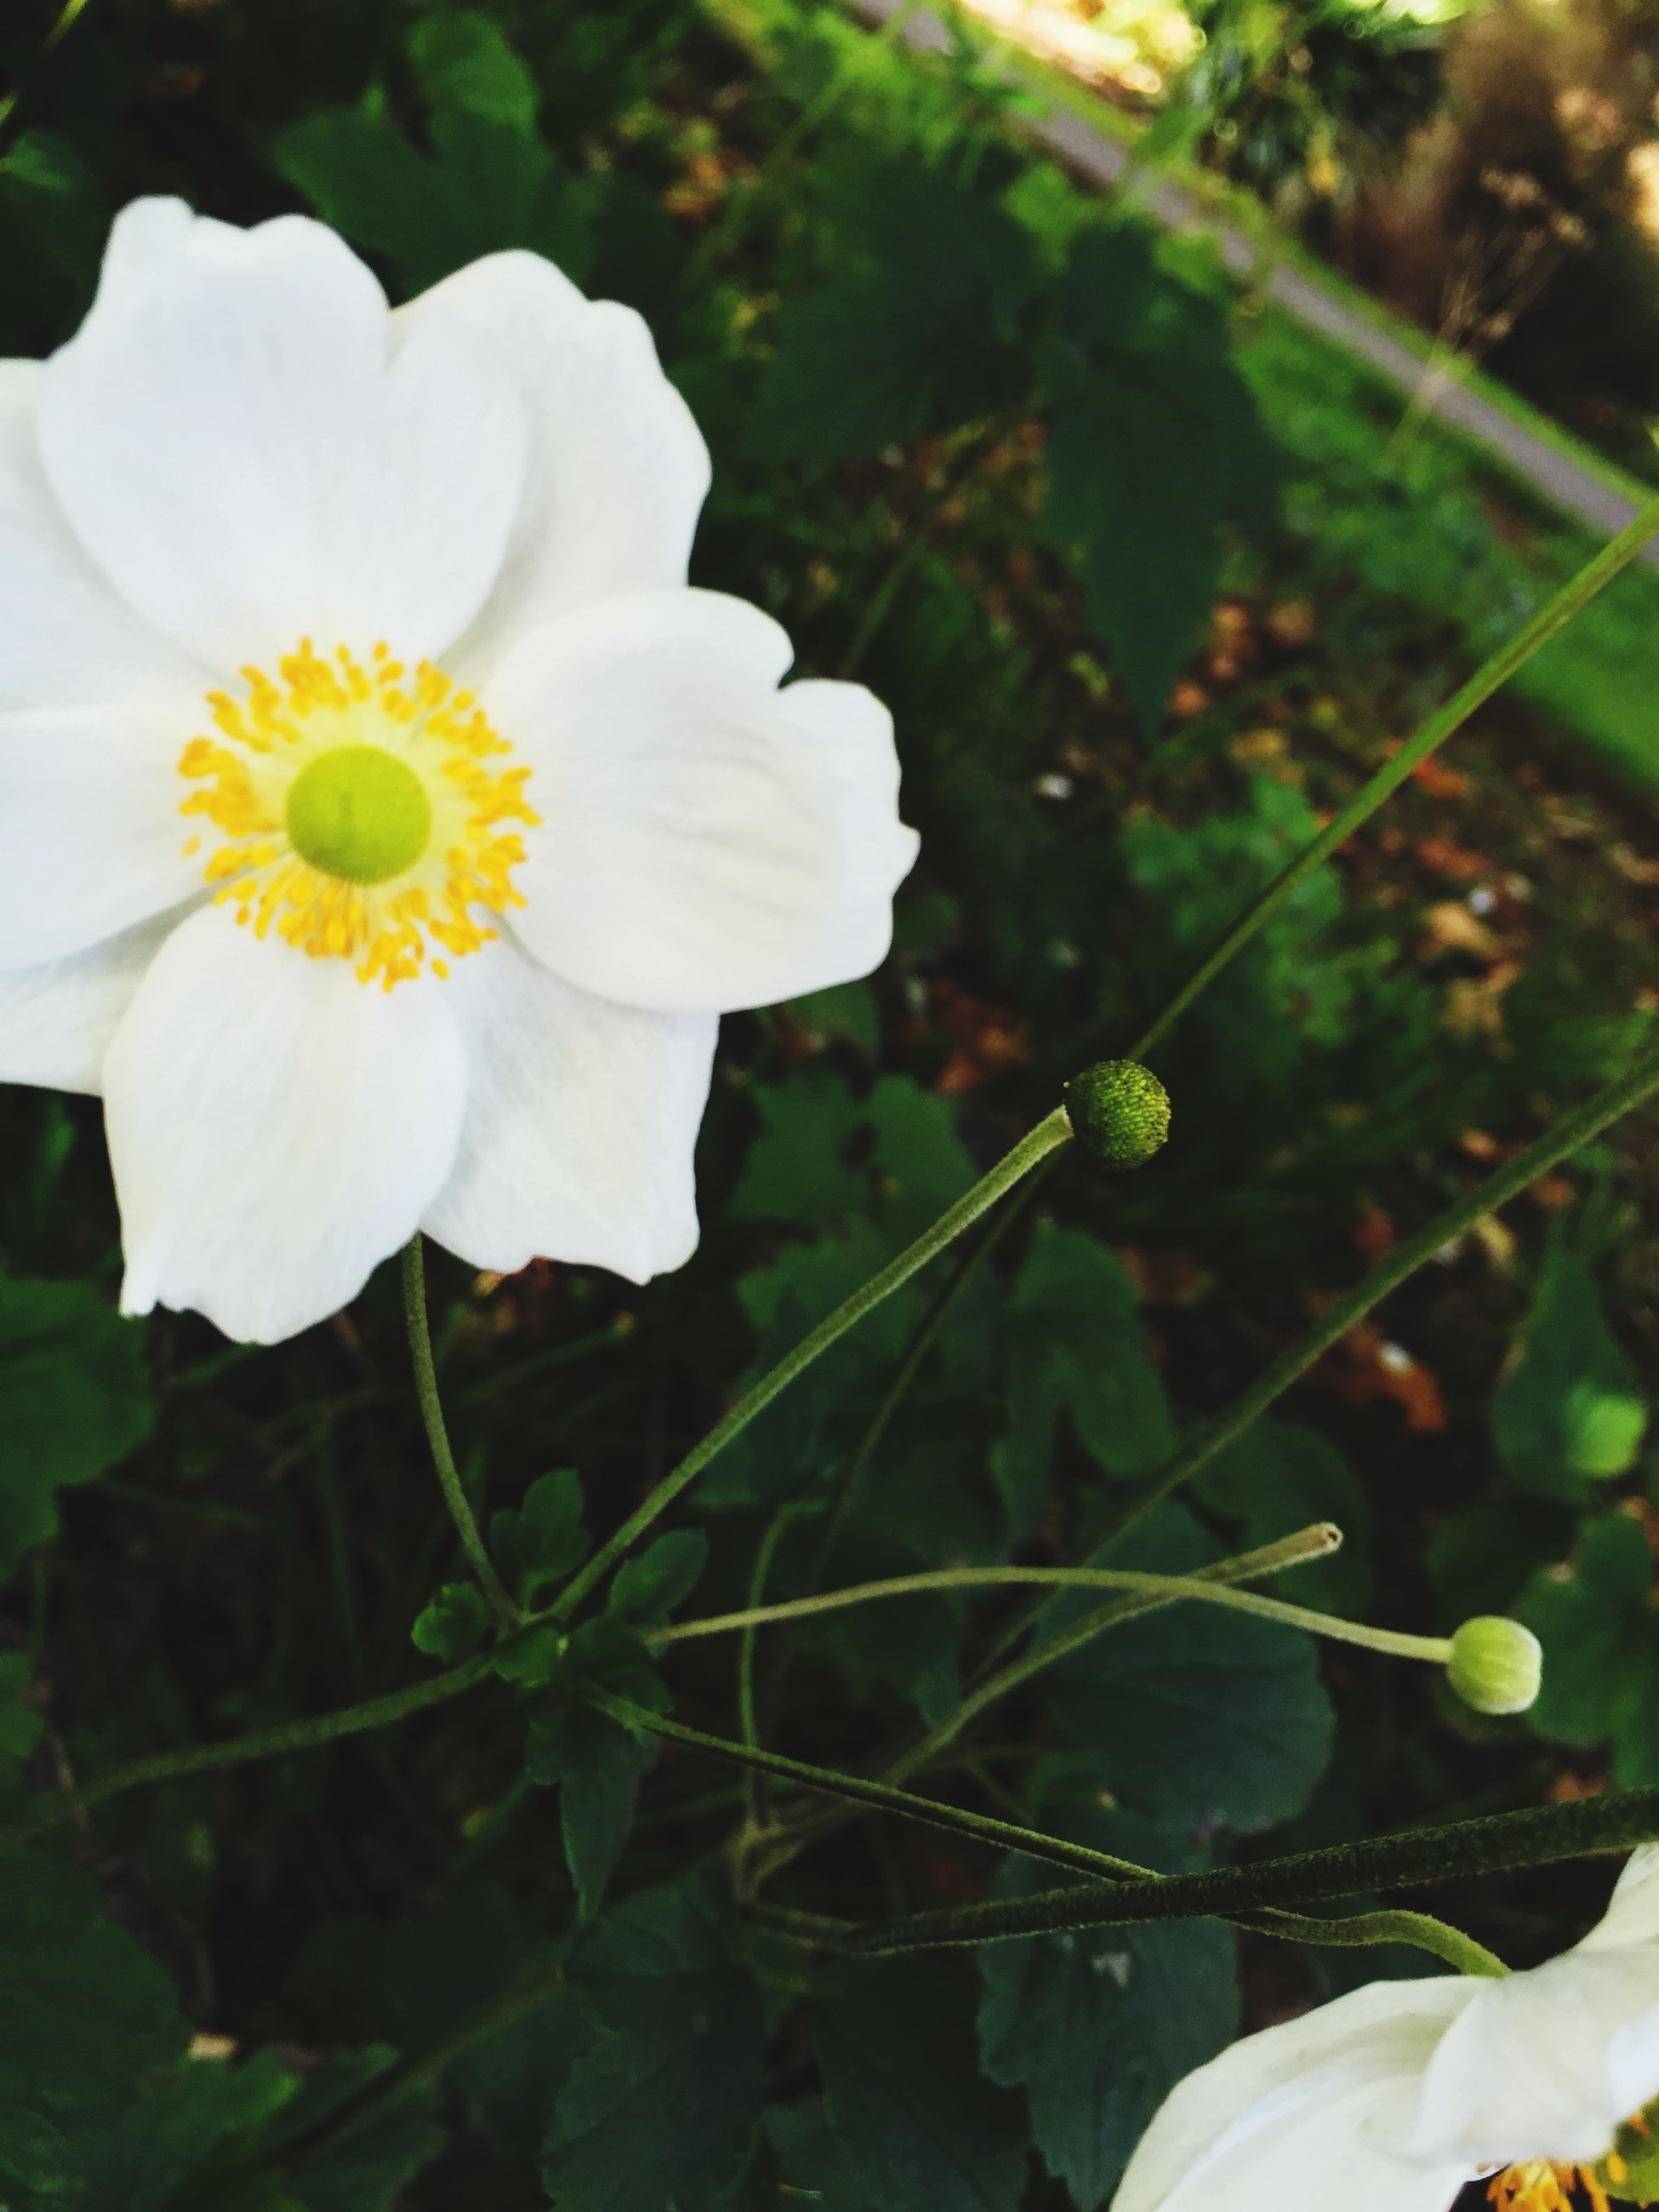 flower, petal, freshness, fragility, growth, flower head, beauty in nature, white color, close-up, plant, blooming, focus on foreground, nature, leaf, in bloom, pollen, park - man made space, day, outdoors, stem